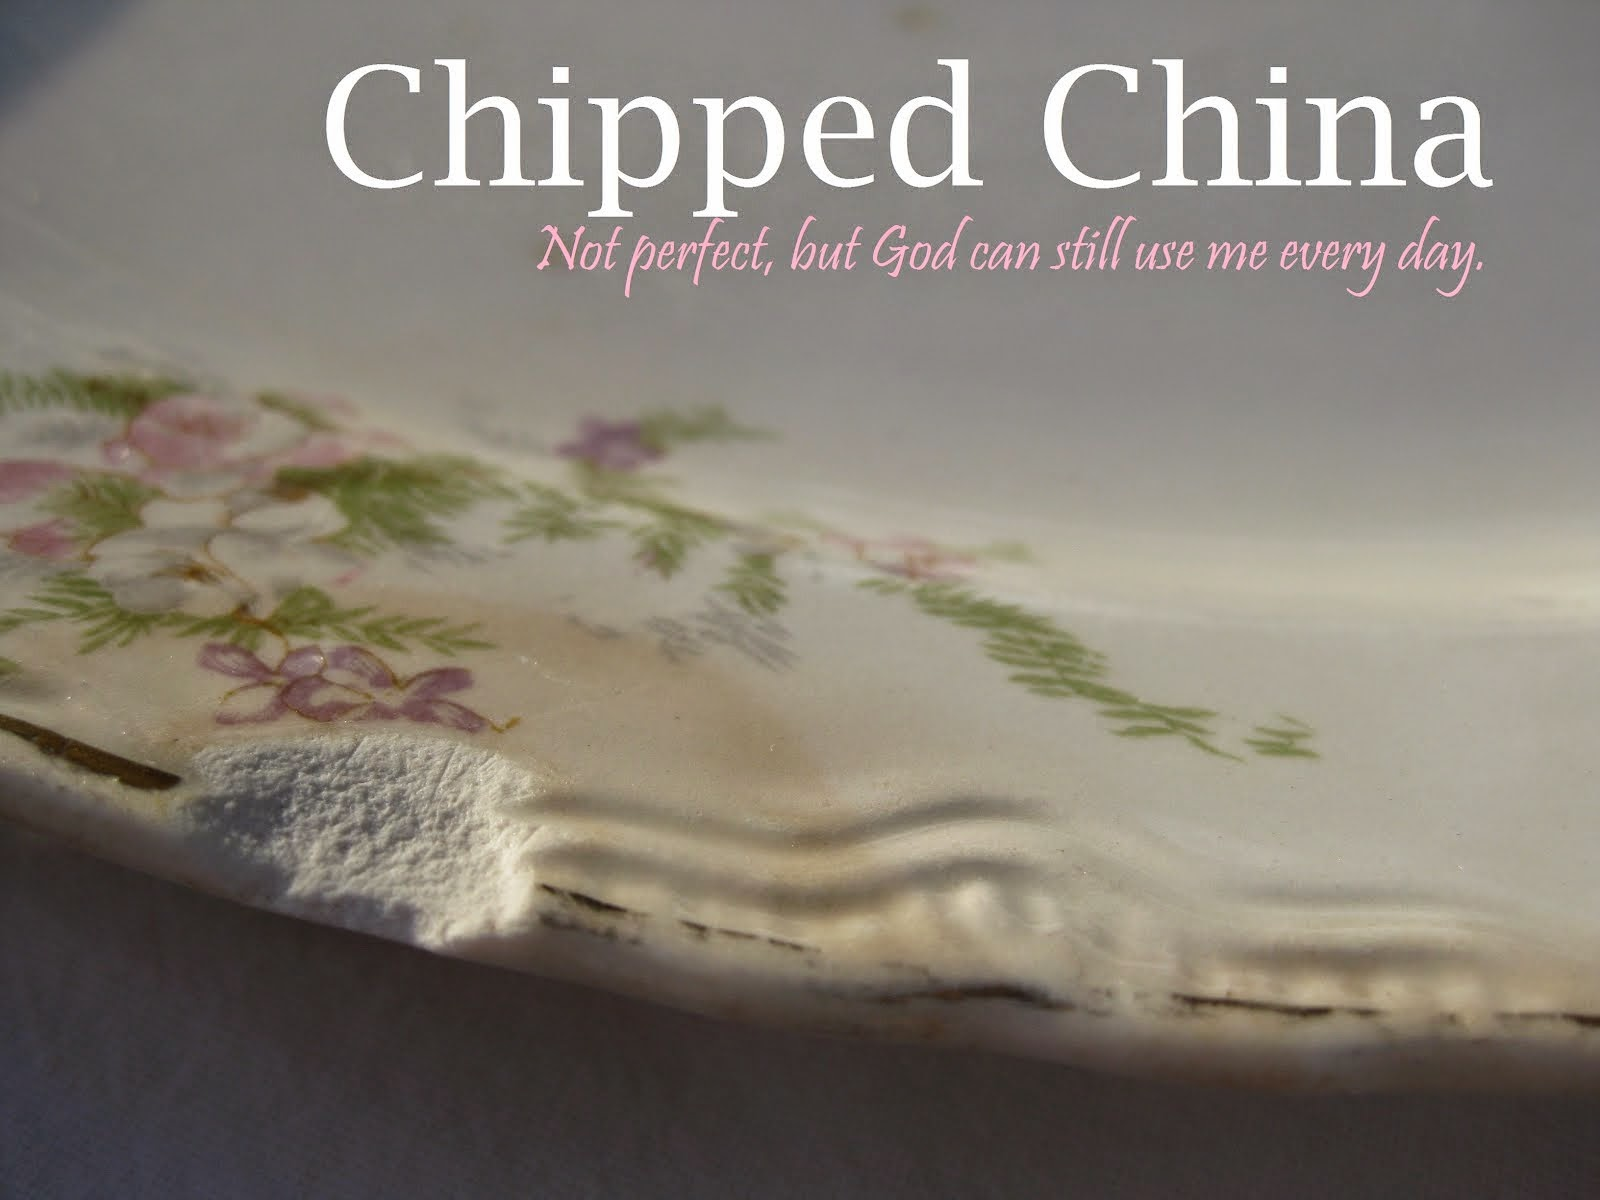 Chipped China